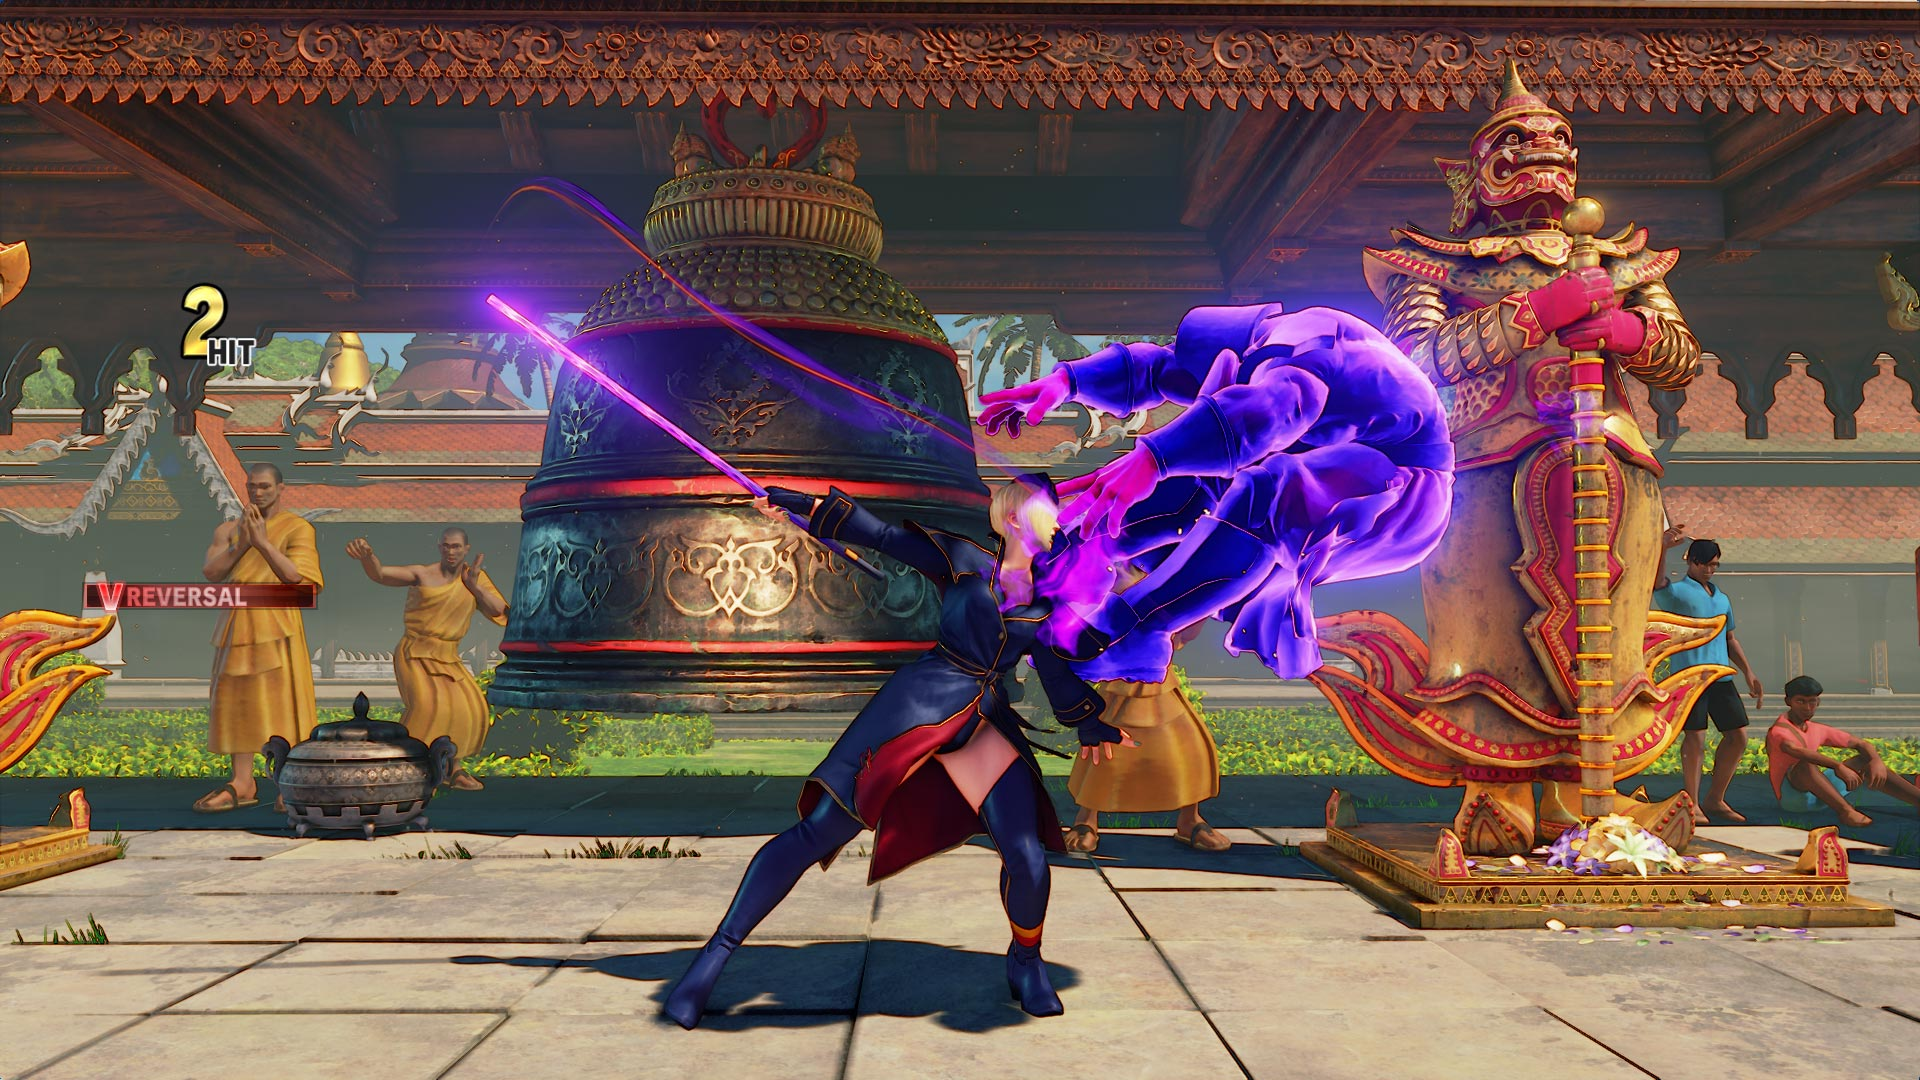 Falke in Street Fighter 5: Arcade Edition 5 out of 15 image gallery